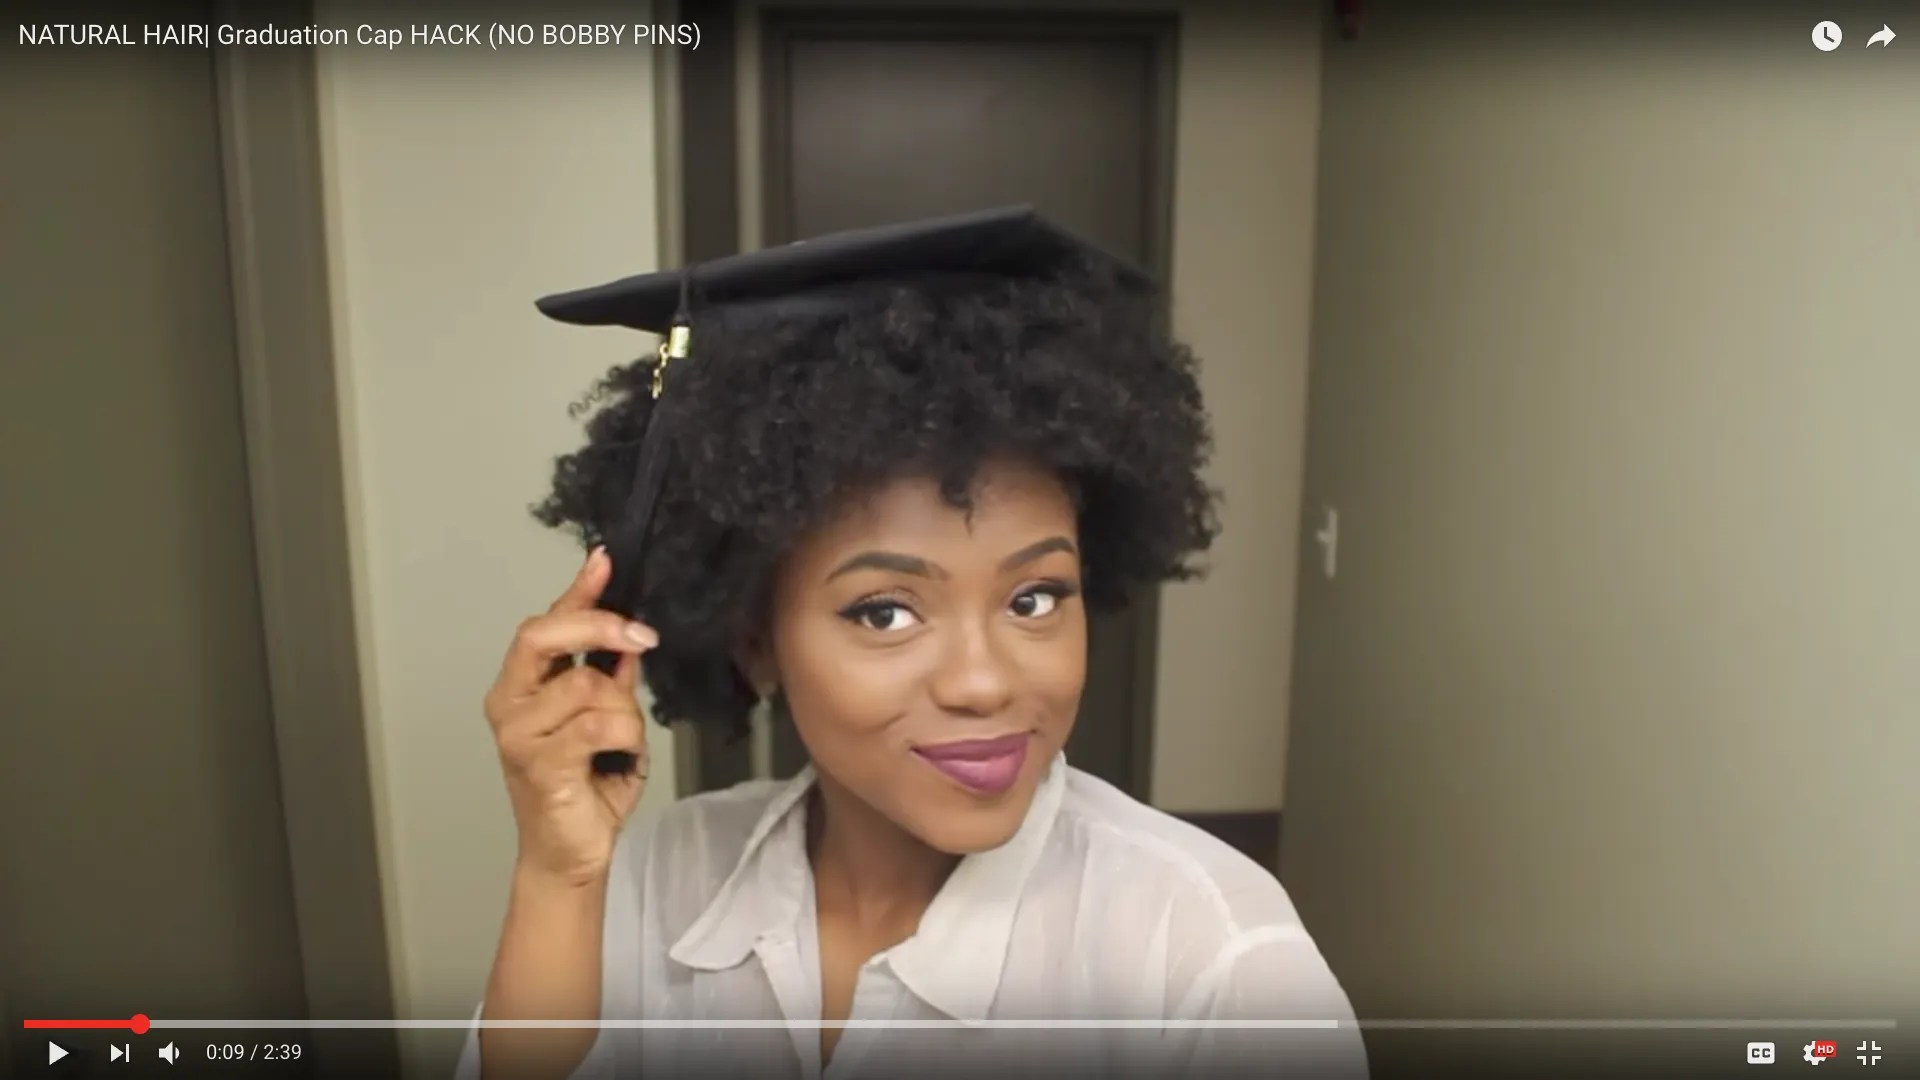 How To Wear a Graduation Cap for Natural Hair Types